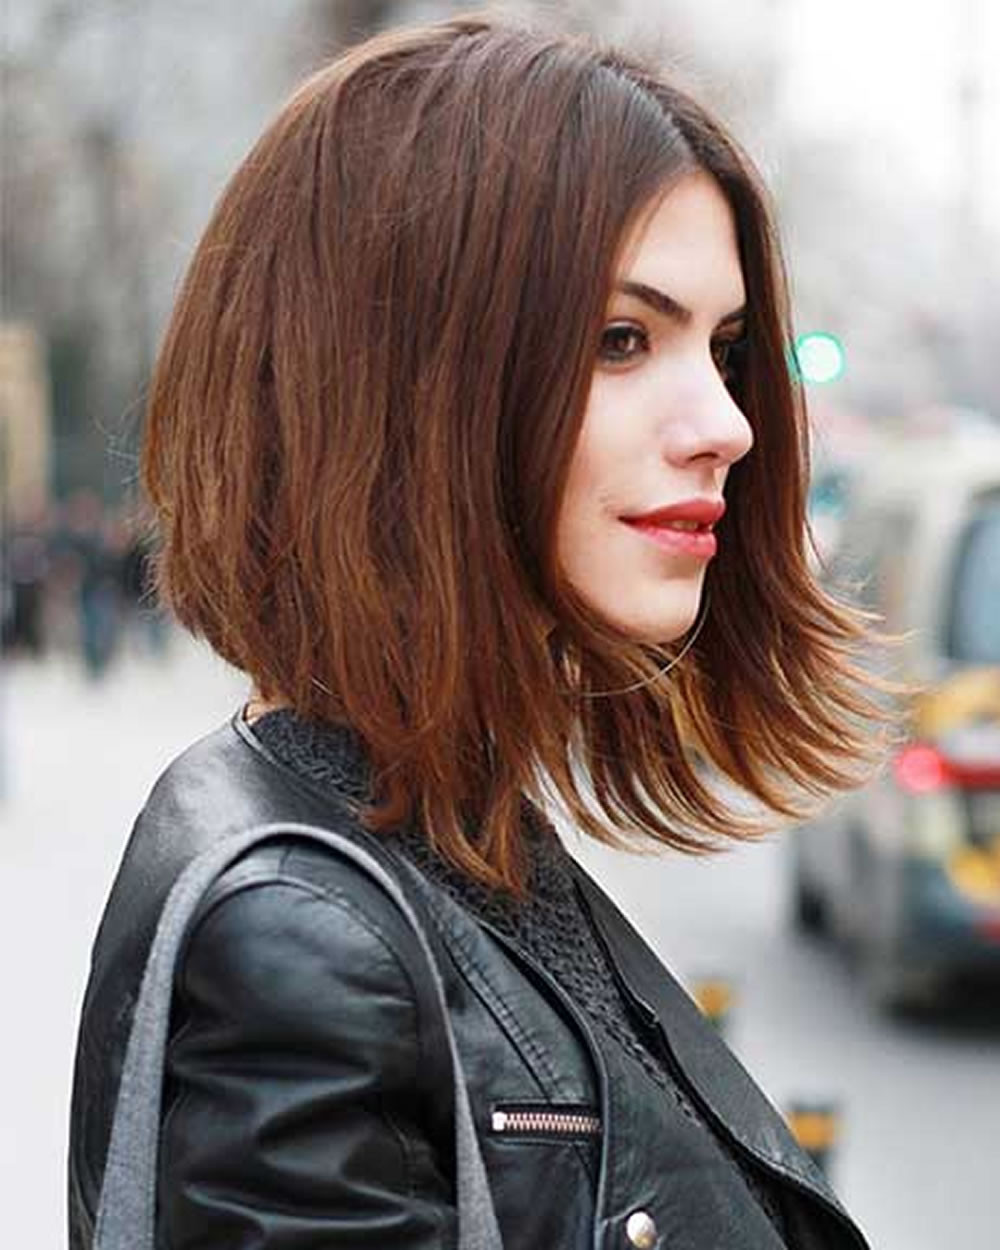 Best ideas about 2019 Female Haircuts . Save or Pin 25 Trendy Short Hair Cut 2018 – Bob & Pixie Hair Styles Now.